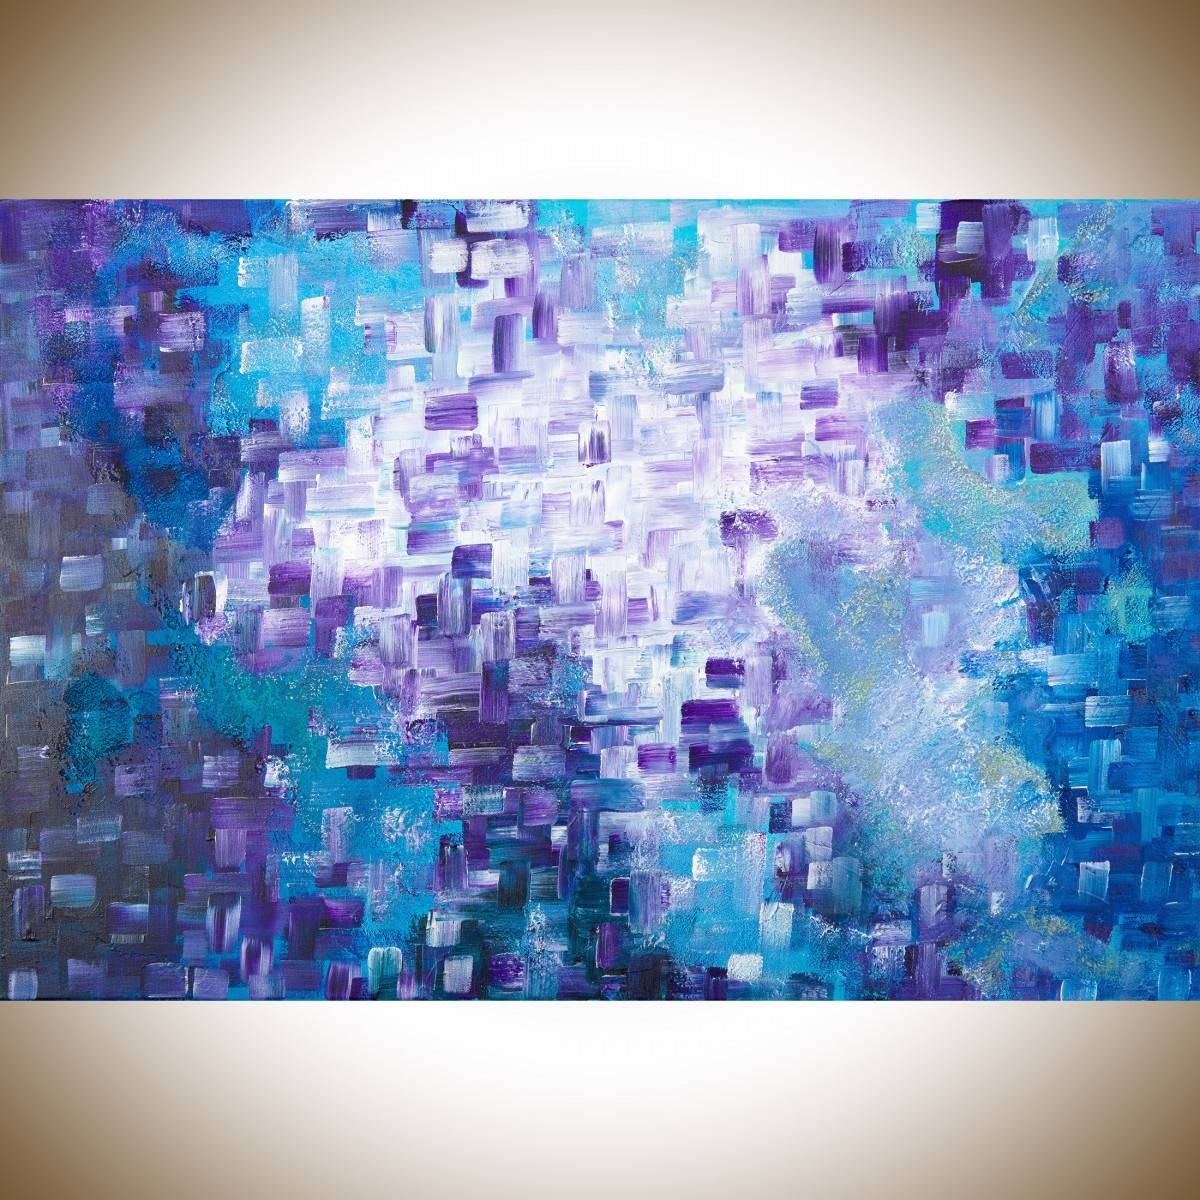 "Dissolvingqiqigallery 36""x24"" Stretched Canvas Original Large Within 2018 Purple Abstract Wall Art (View 9 of 20)"